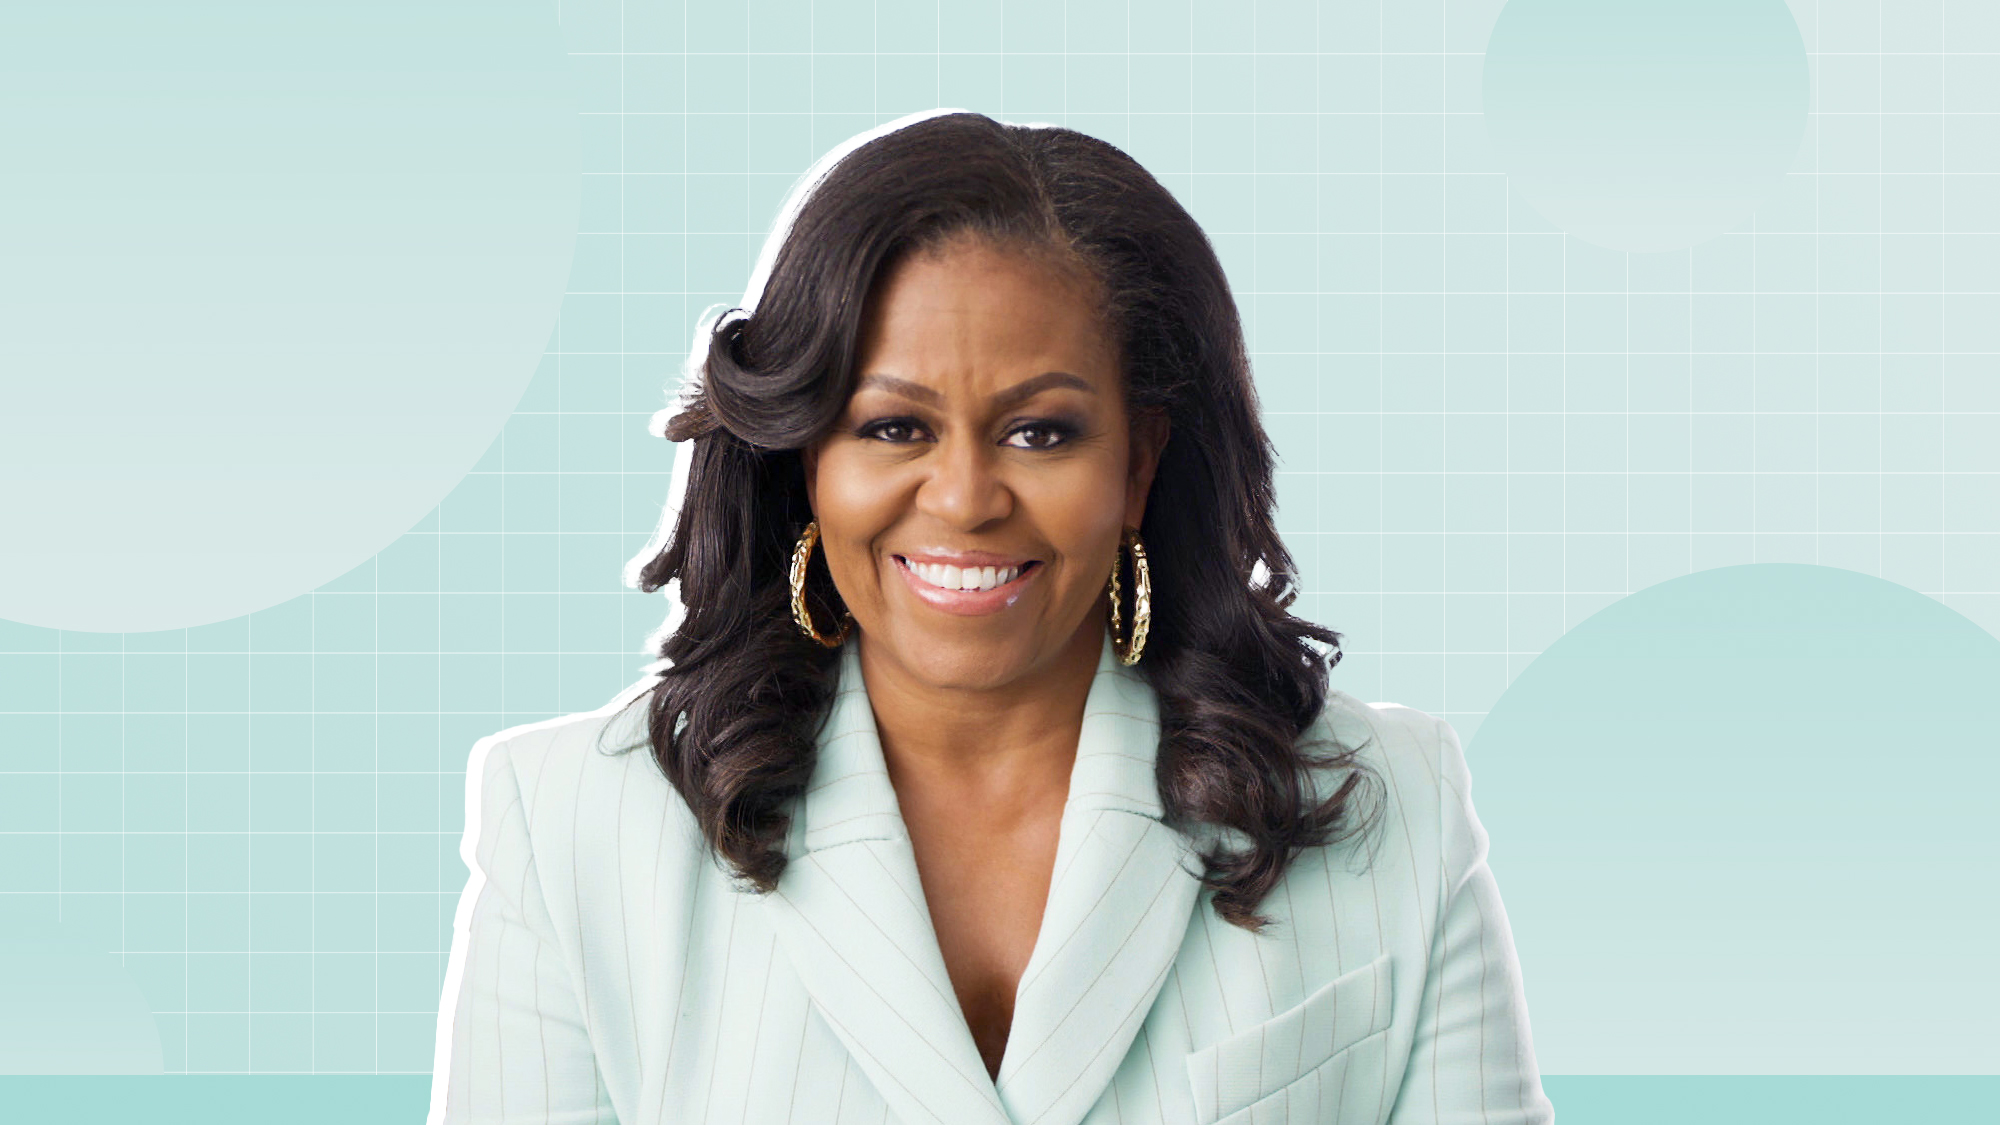 Portrait of Michelle Obama on a designed background